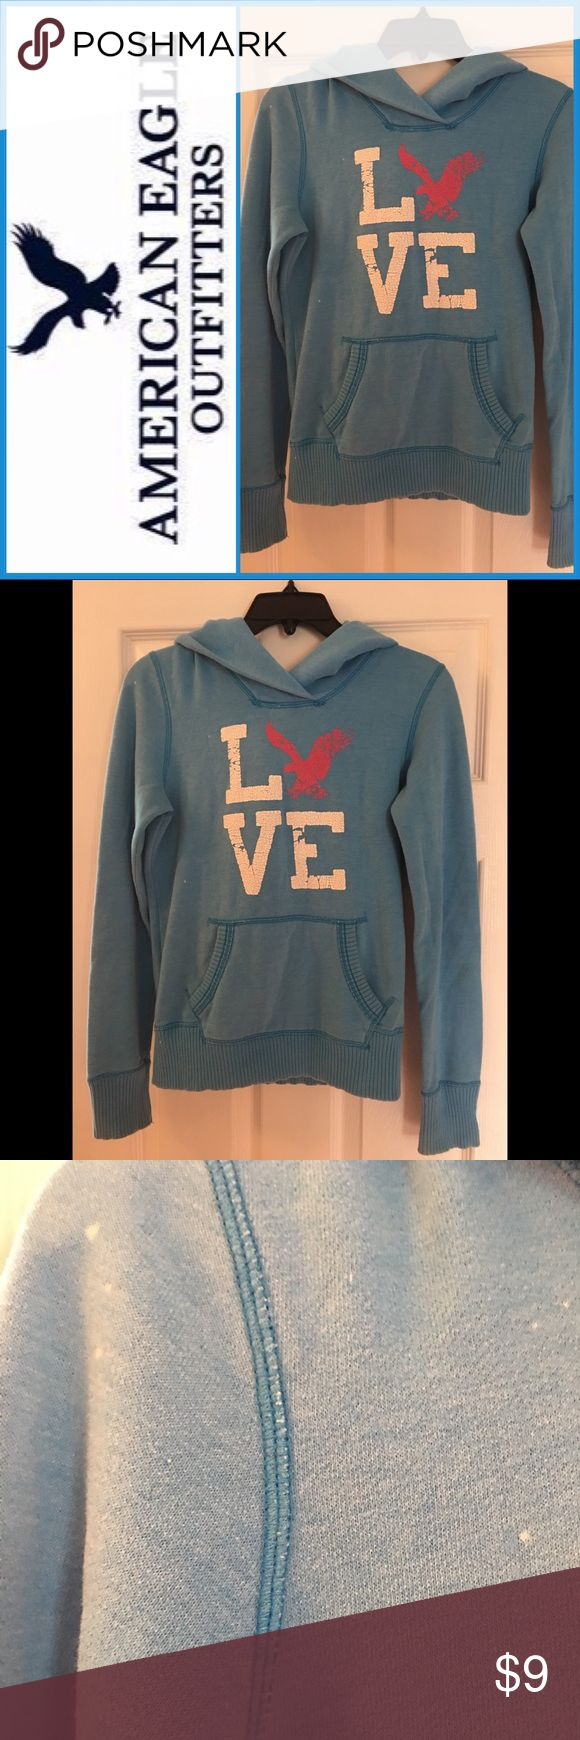 Women's American Eagle Logo Hoodie Women's American Eagle Logo Hoodie ▪️Used. Please refer to pics for the small white specks located on parts of sweatshirt. And extra wear on logo (was bought with logo wear already/supposed to be that way) ▪️Size: XS/TP ▪️Style: Hoodie with front pocket ▪️Color: Blue ▪️Material: 60% Cotton/40% Polyester ▪️Made: Vietnam American Eagle Outfitters Tops Sweatshirts & Hoodies